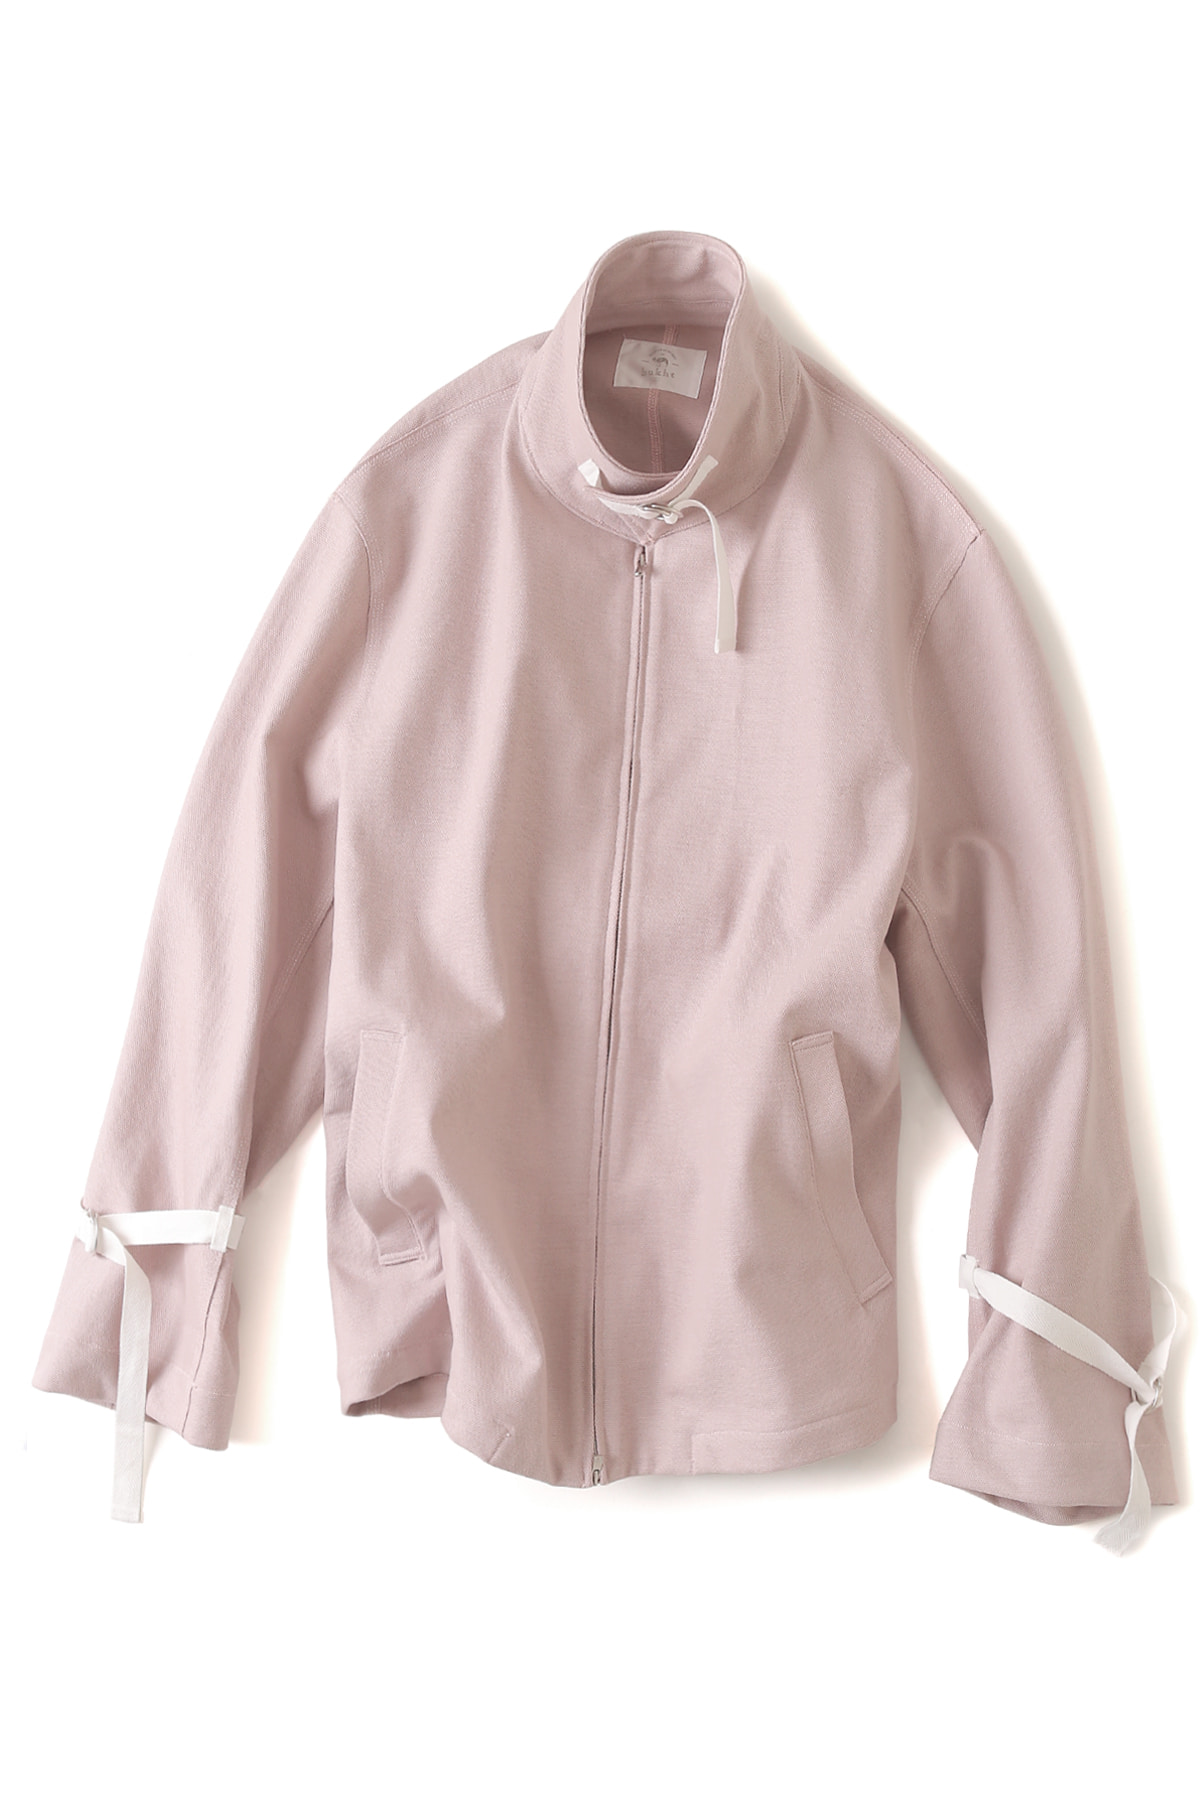 bukht : Bulky Yarn Zip Blouson (Light Pink)